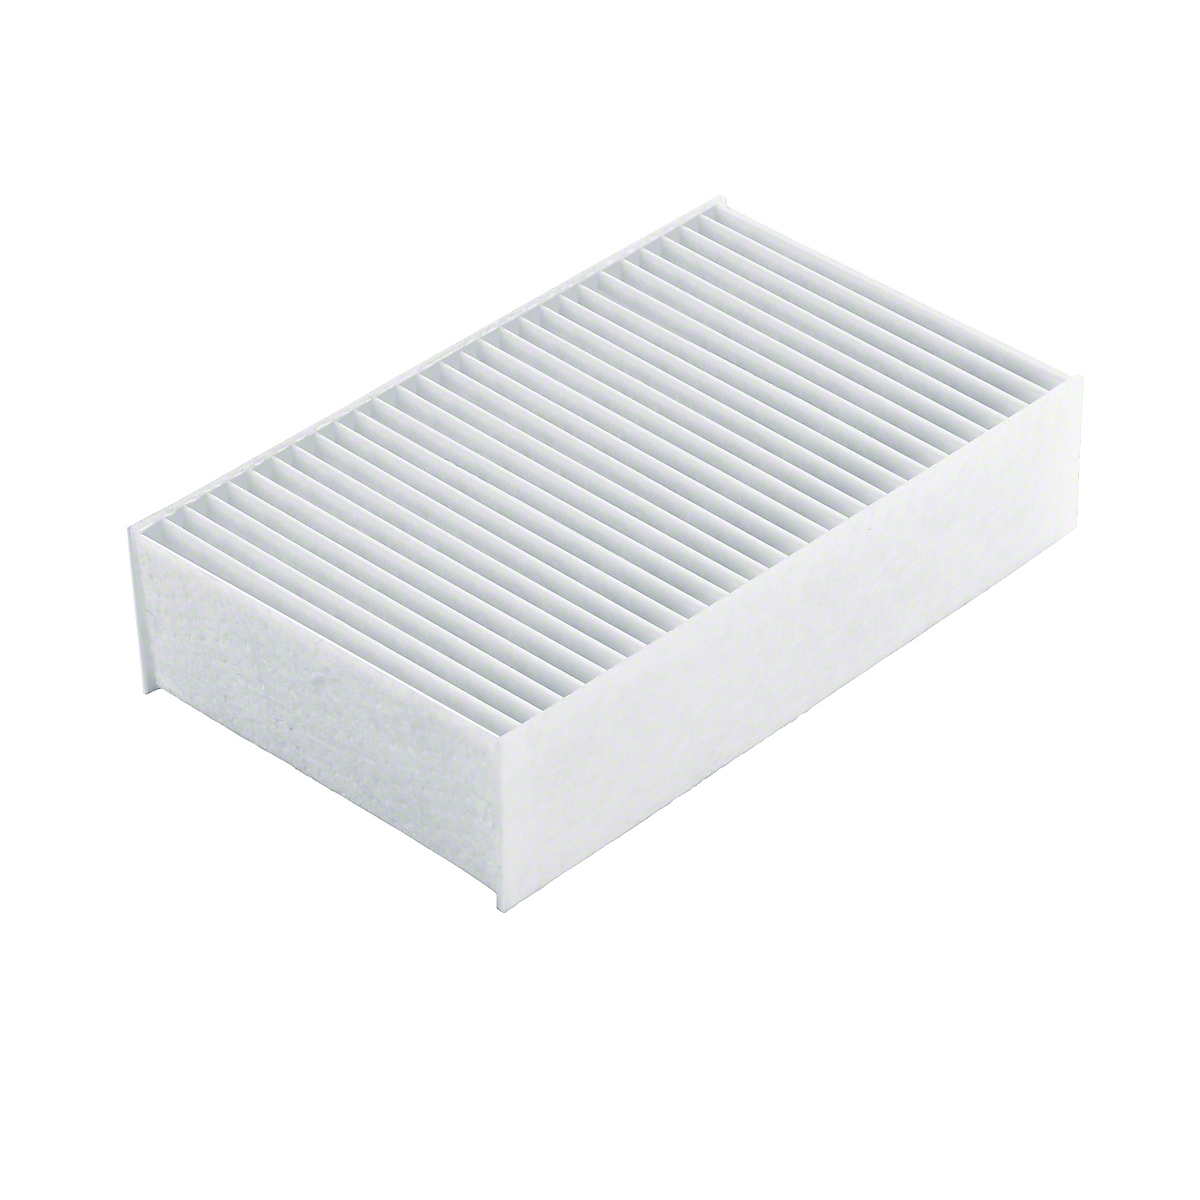 Tumble Dryer Filter ~ Miele hygiene filter tf hg for tumble dryer